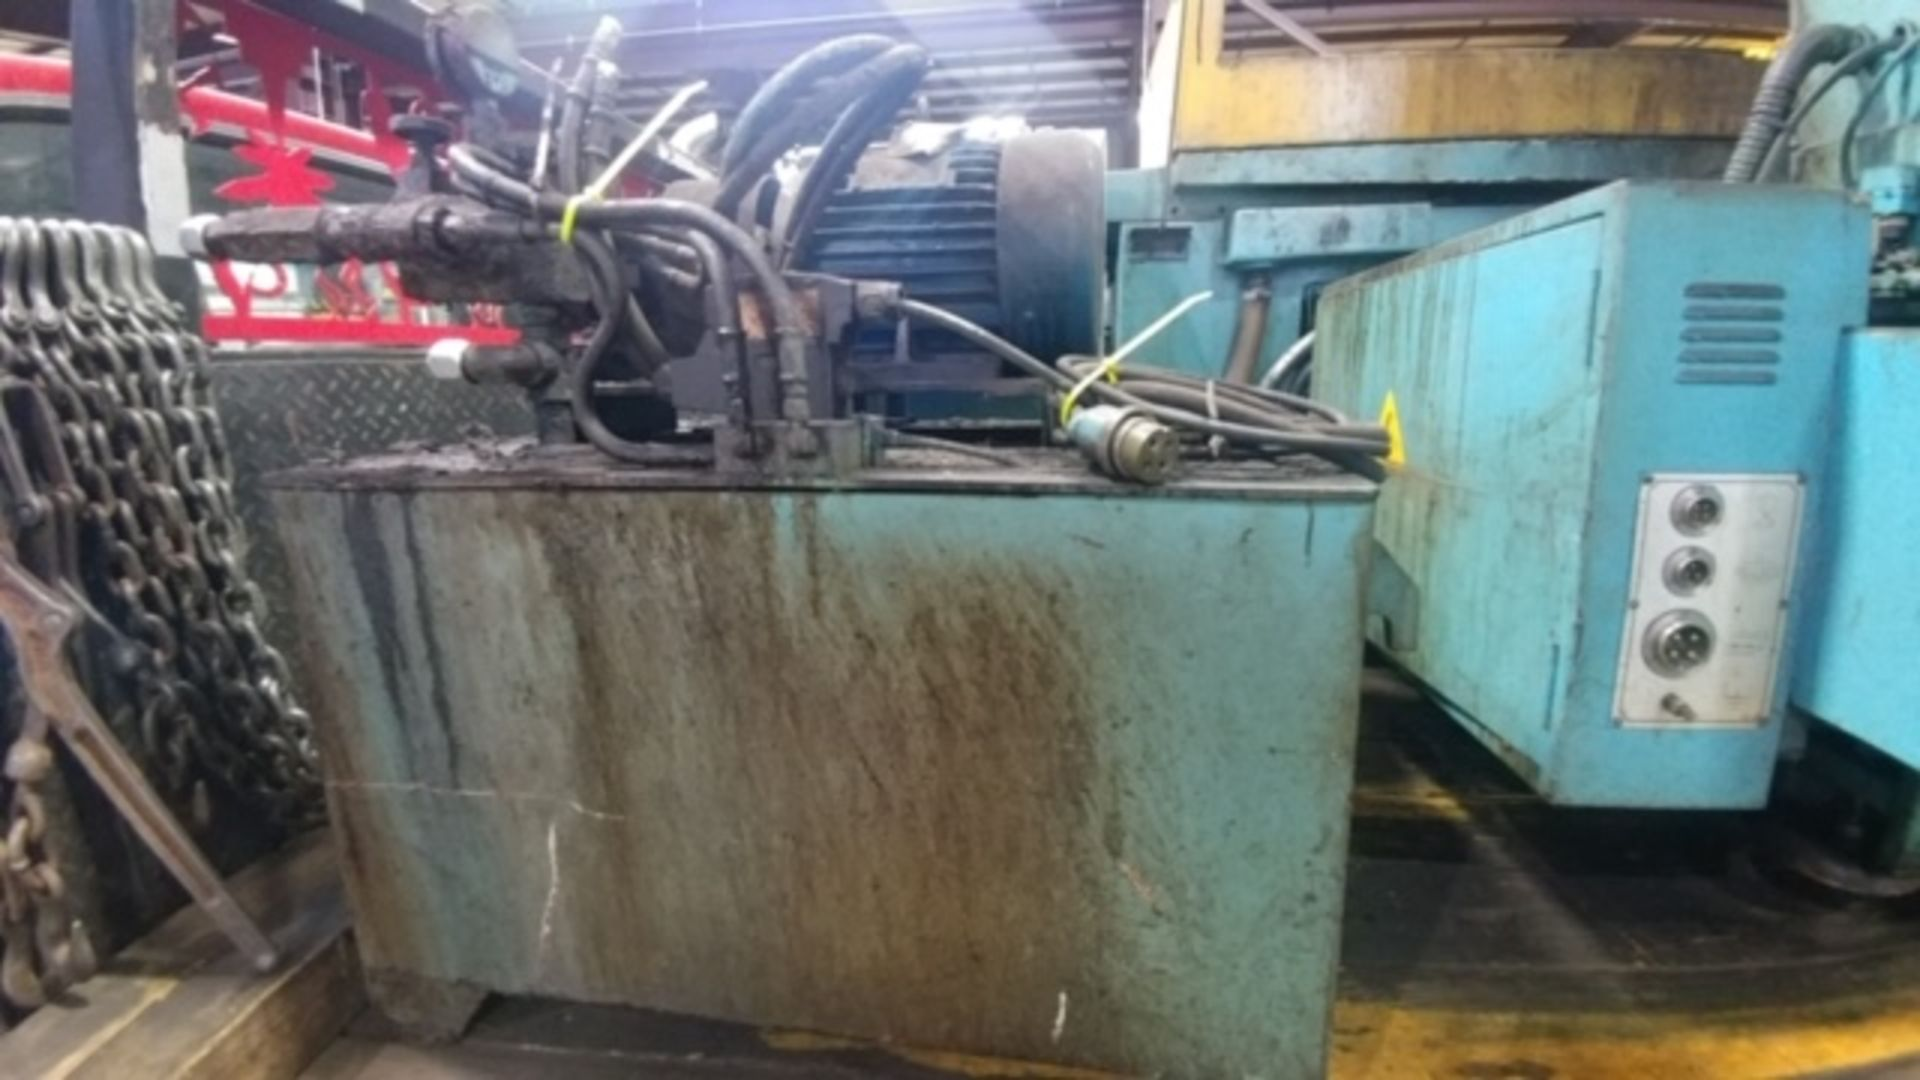 Kent KGS-410AHD SURFACE GRINDER - Image 16 of 16